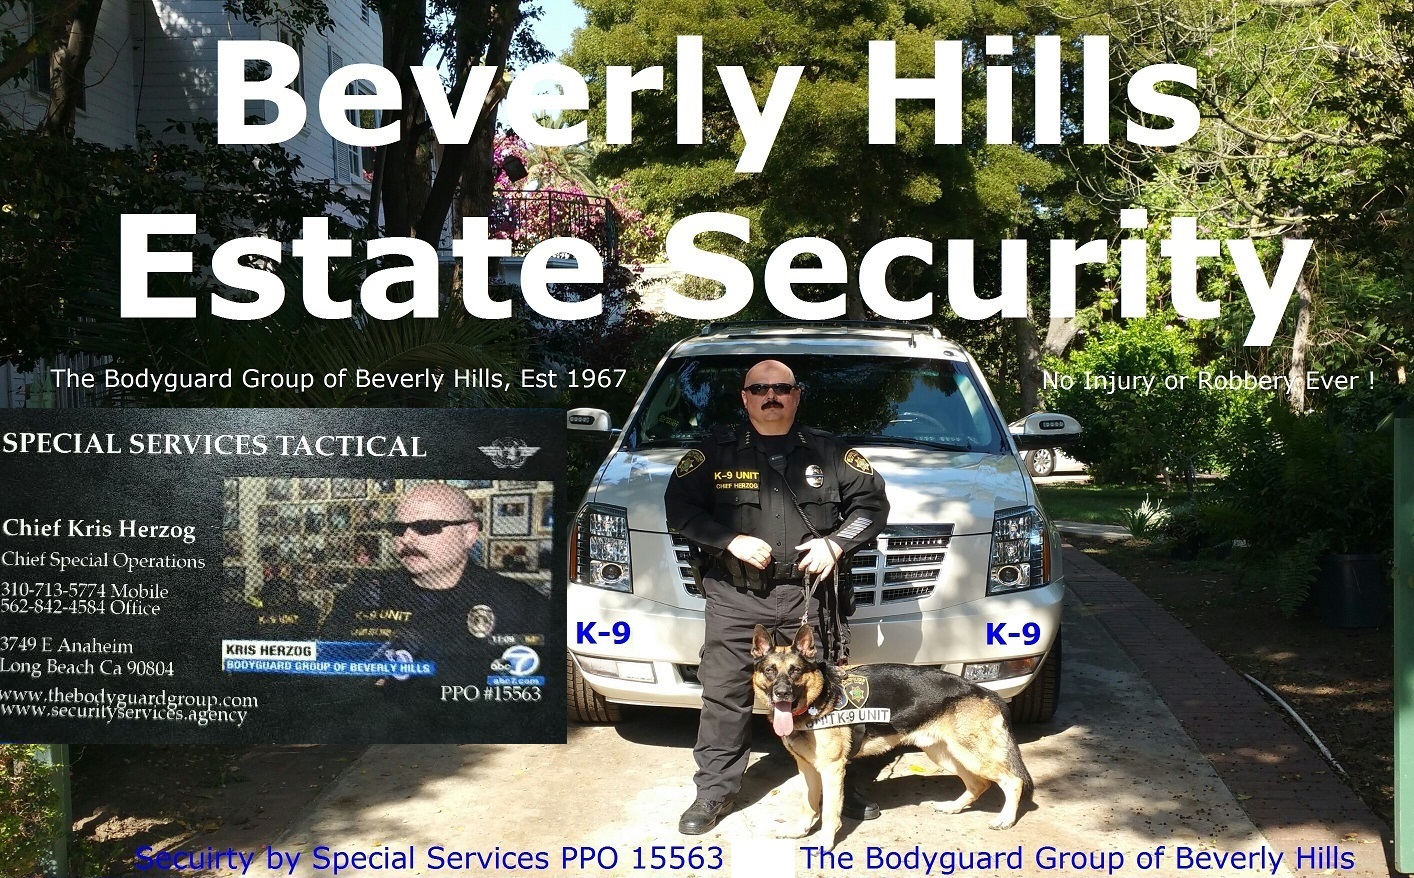 Beverly Hills estate security L.A. RIOTS 2020 The Bodyguard Group of Beverly HIlls and SST PPO 15563 90210 SECURITY